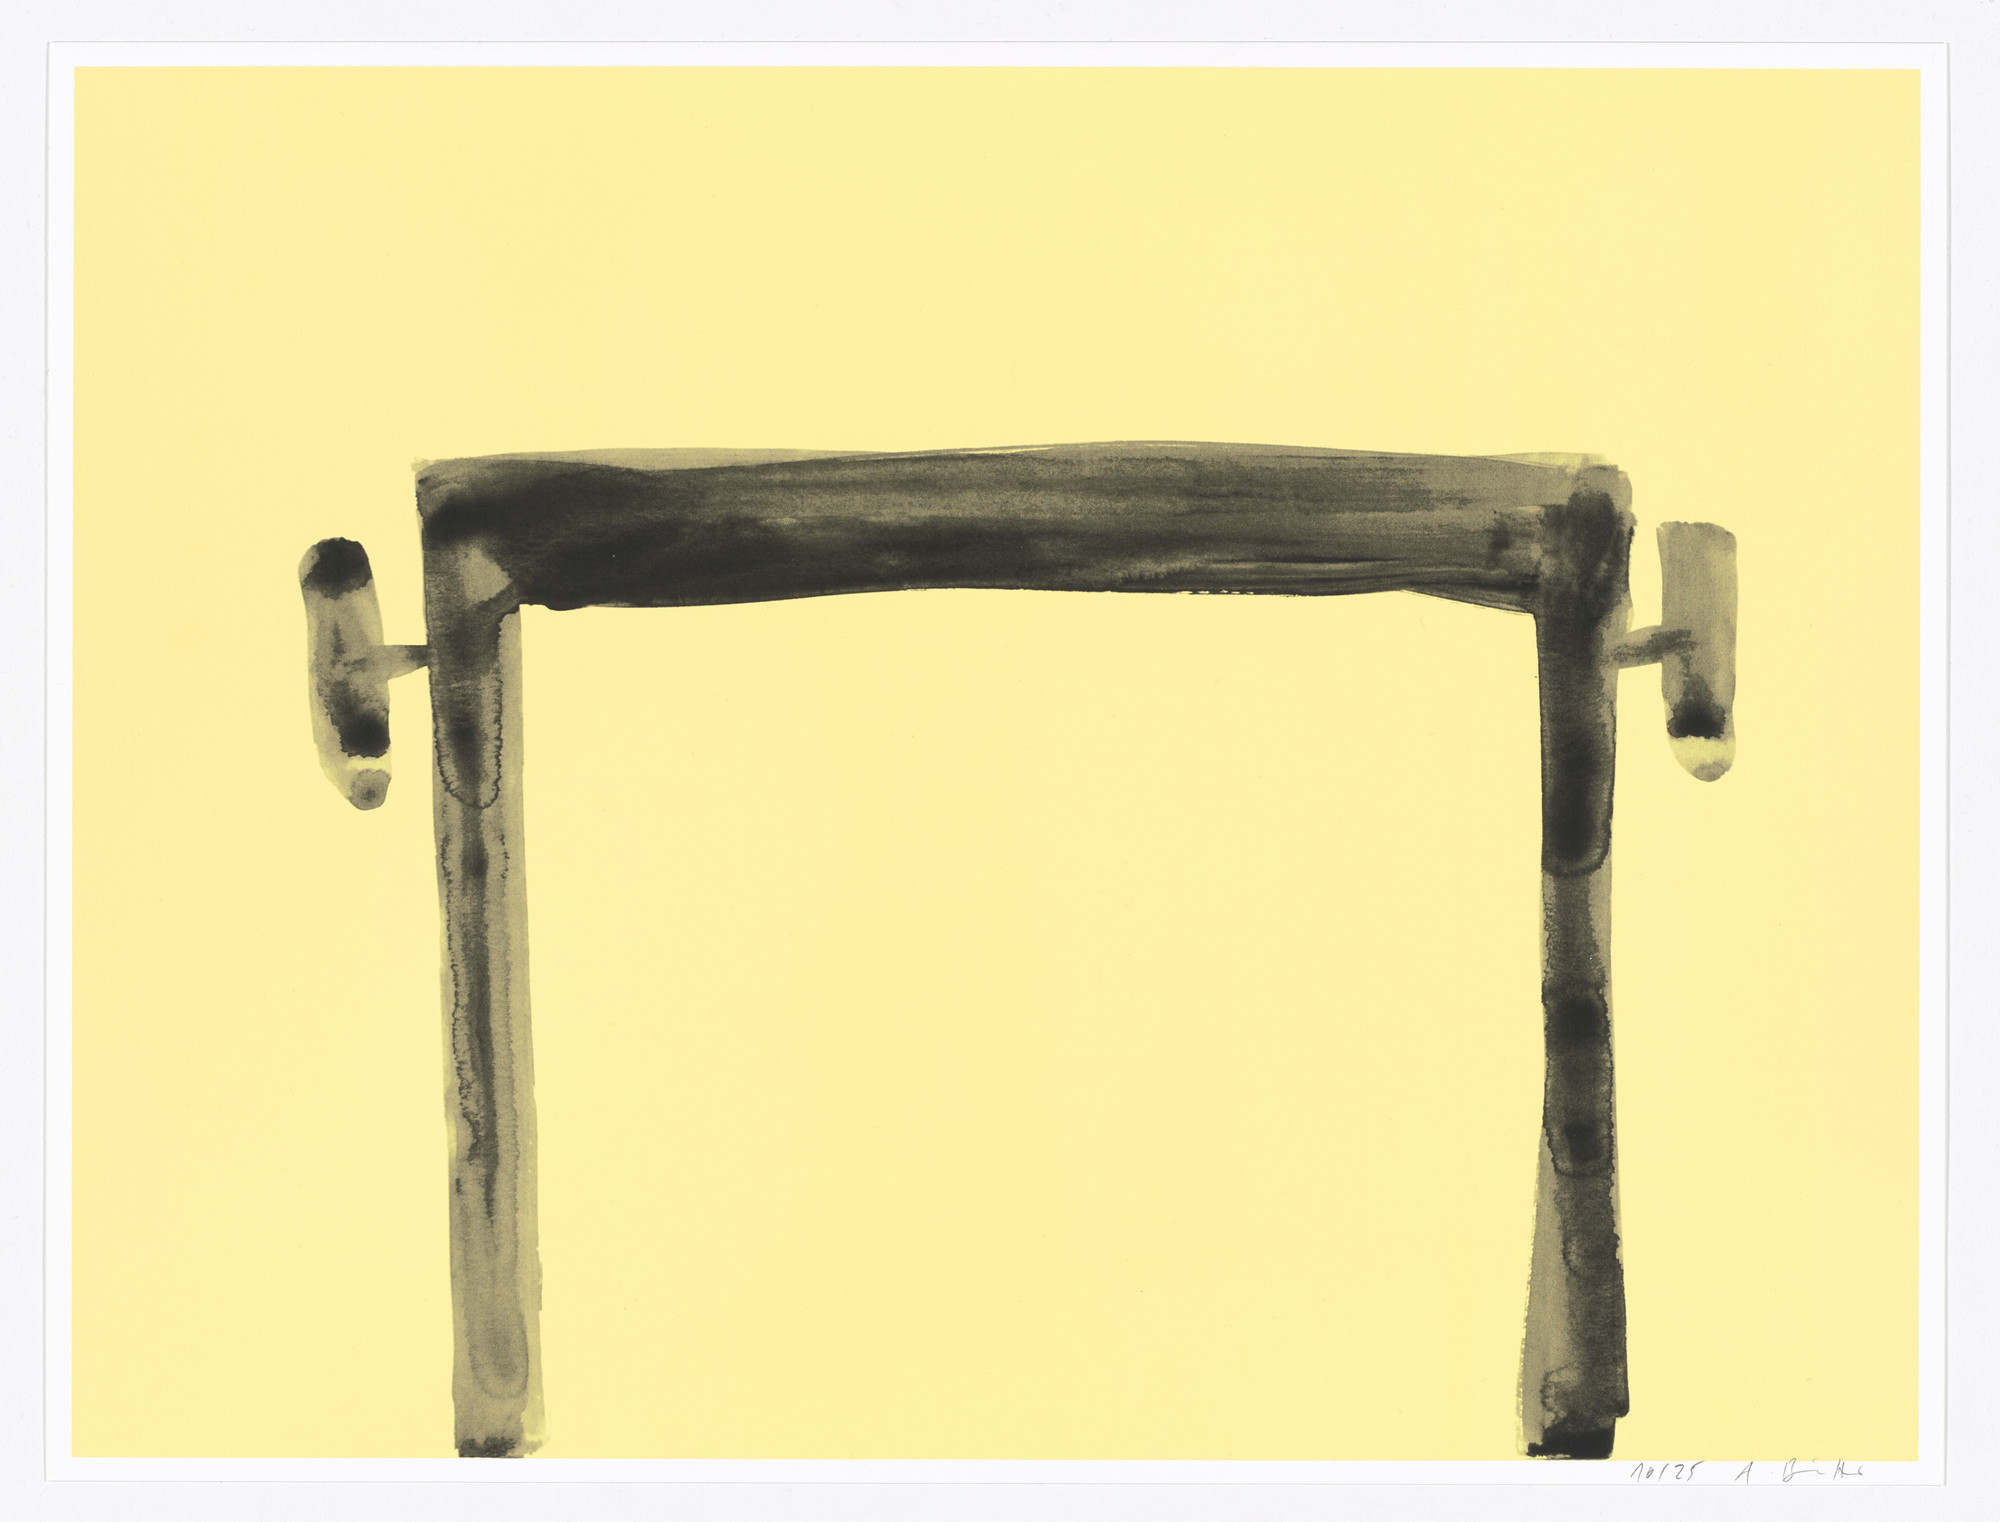 Andrea Büttner. Piano Stool (Silkscreen) (for Parkett no. 97). 2015